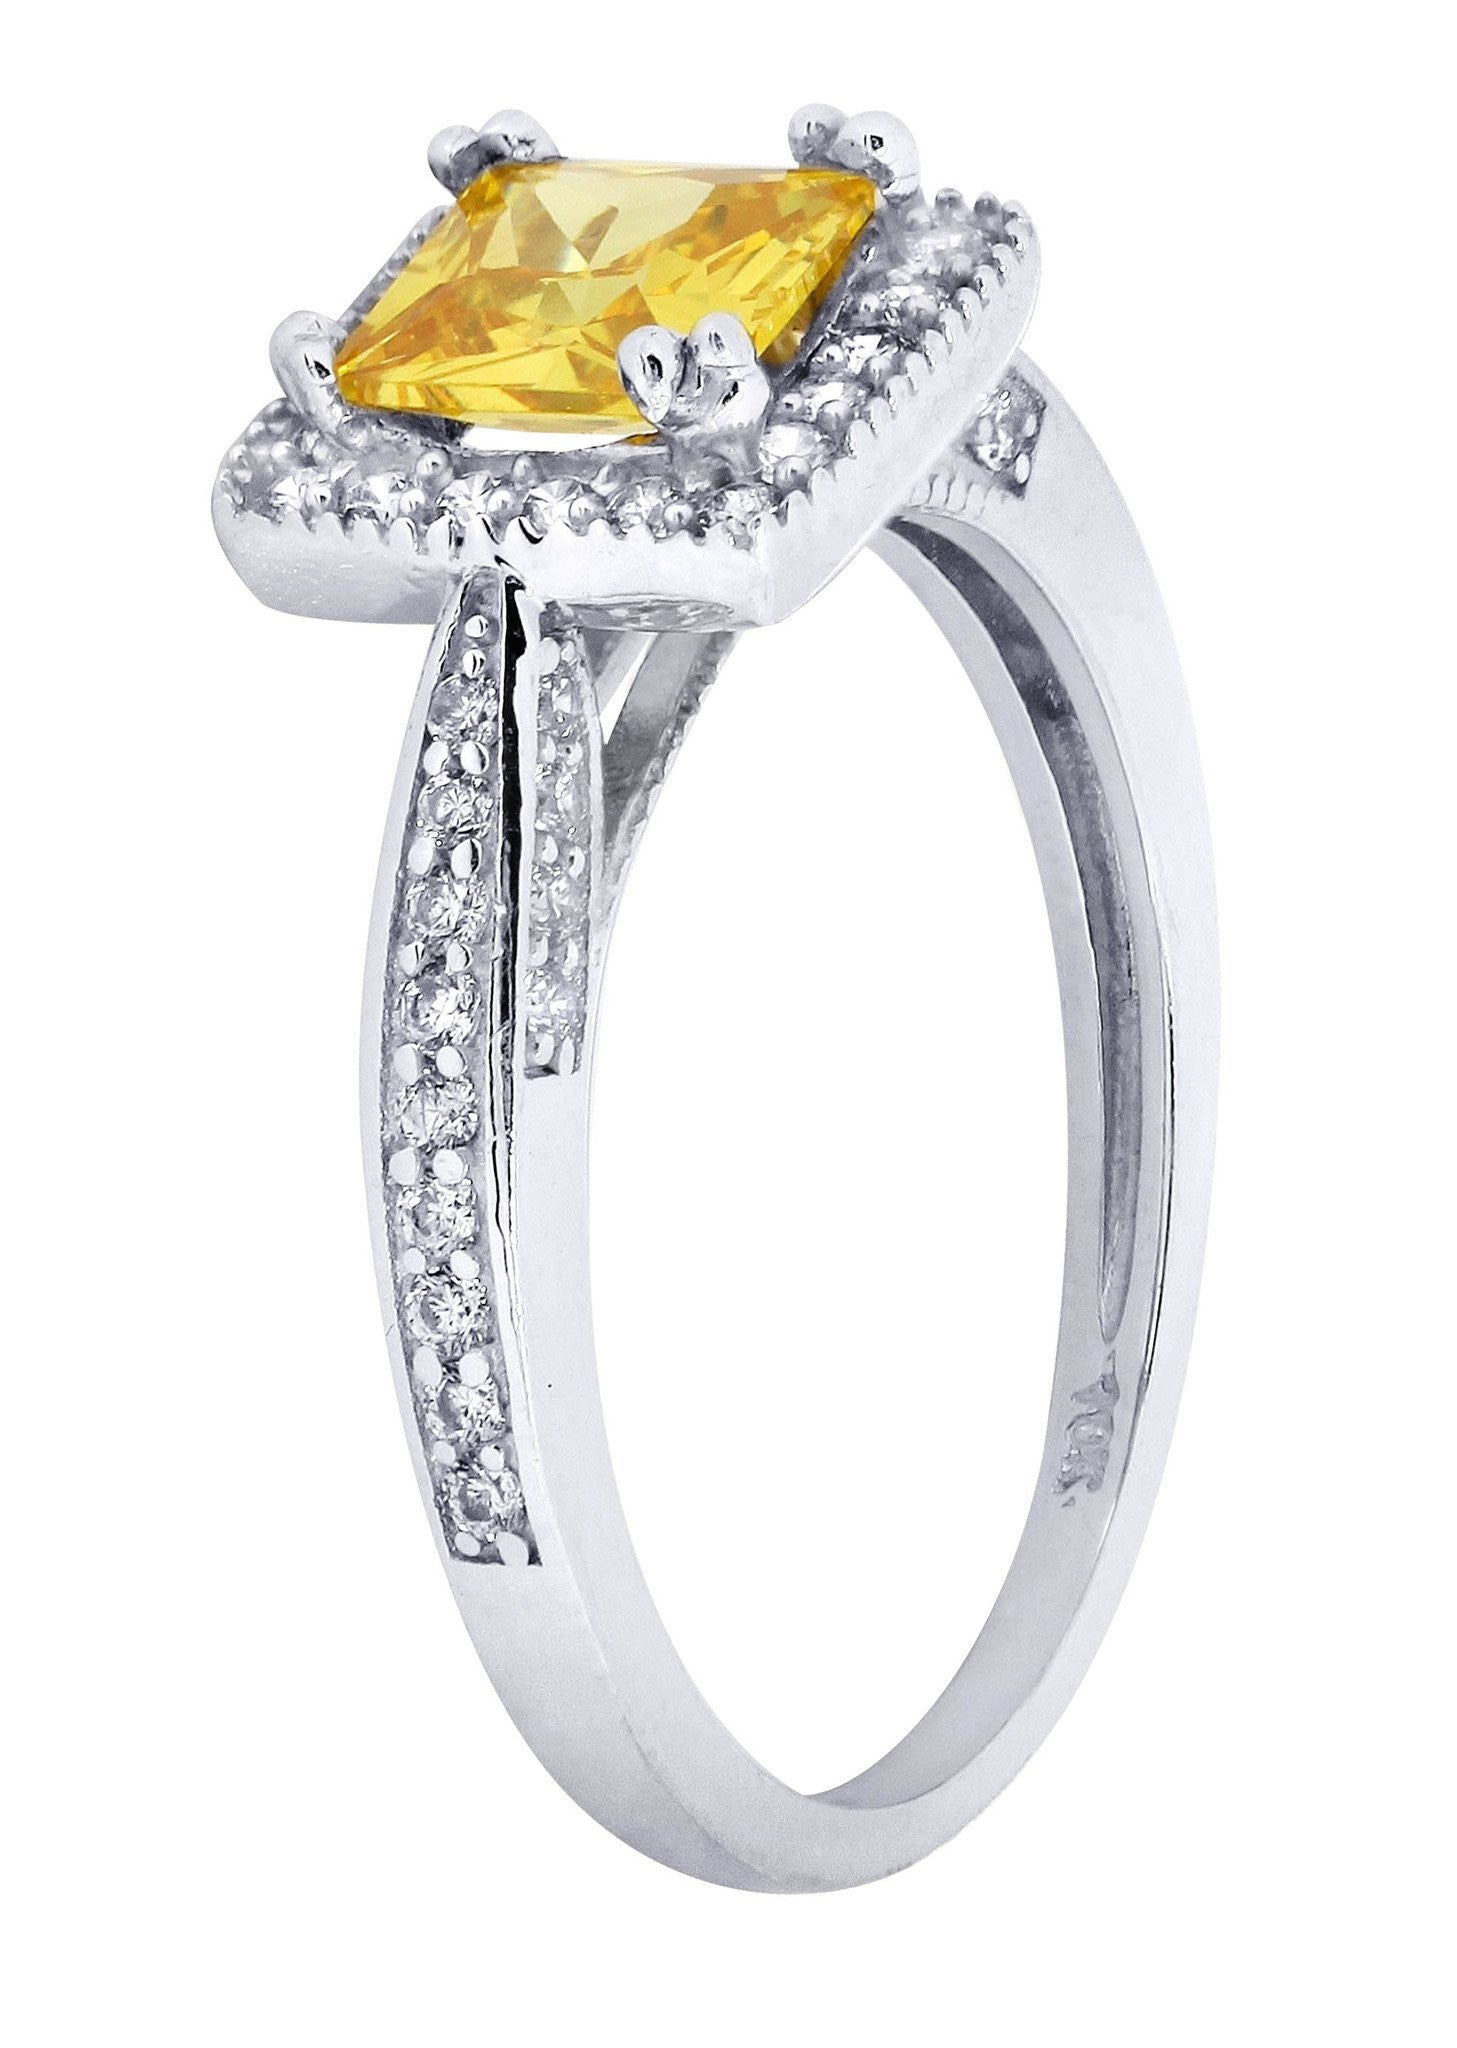 citrine promise ring 10k gold 2 7 grams frostnyc